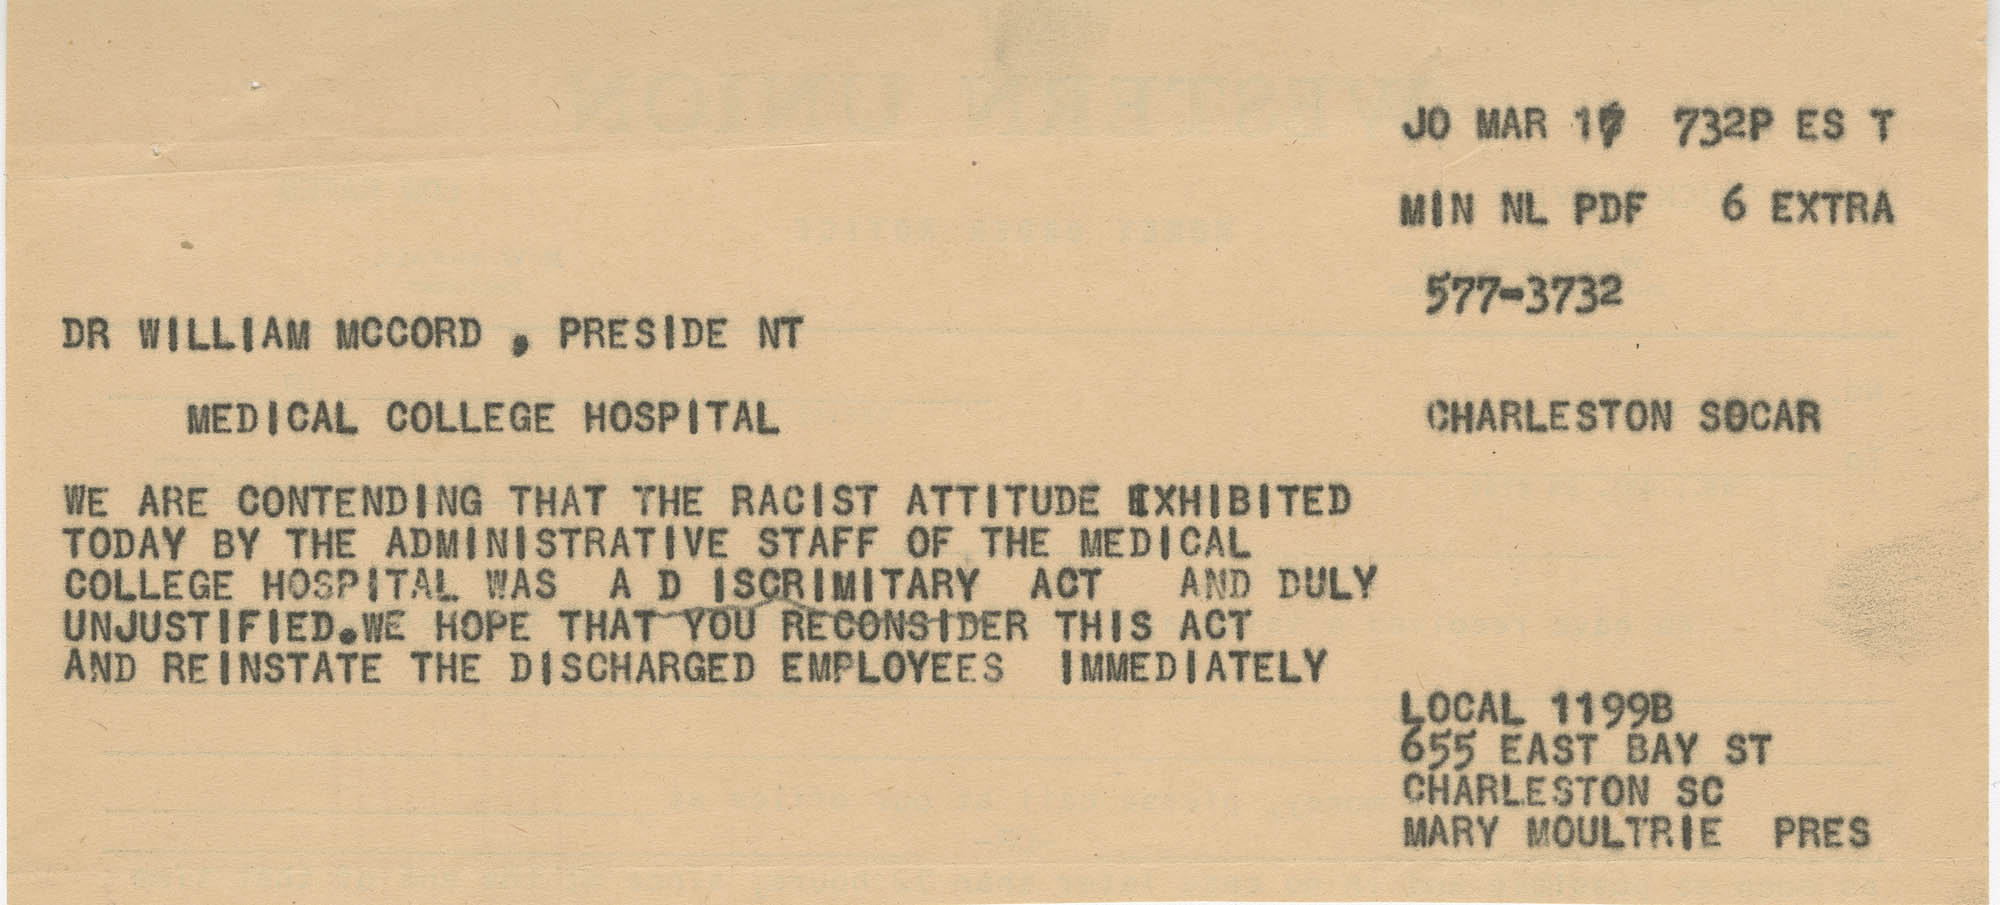 Telegram to Dr. William McCord from Local 1199-B protesting dismissal of employees